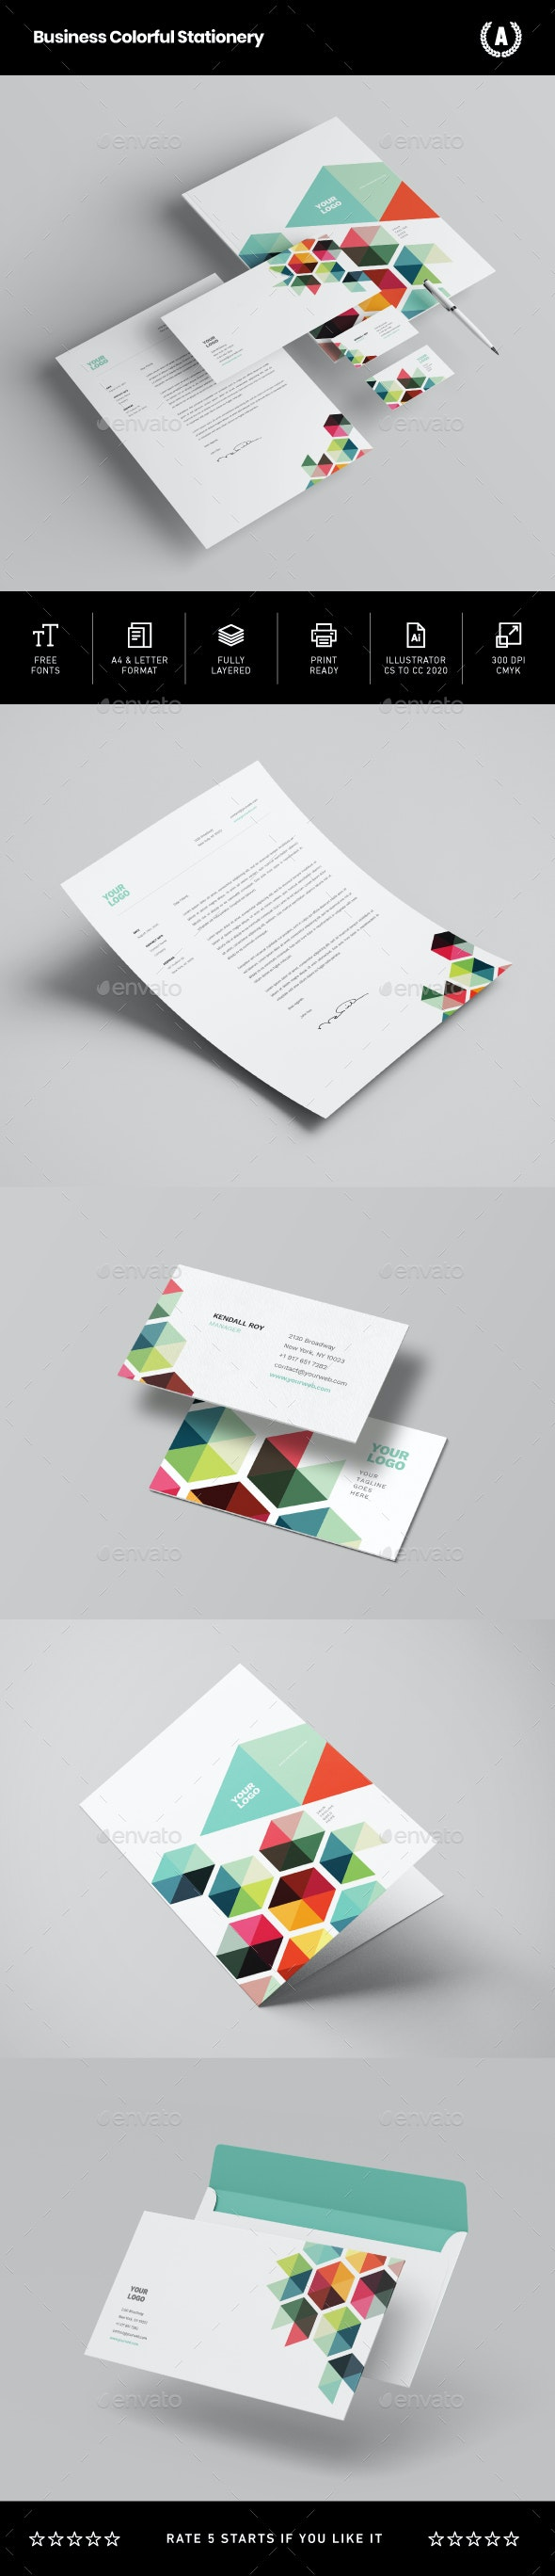 Business Colorful Stationery - Stationery Print Templates